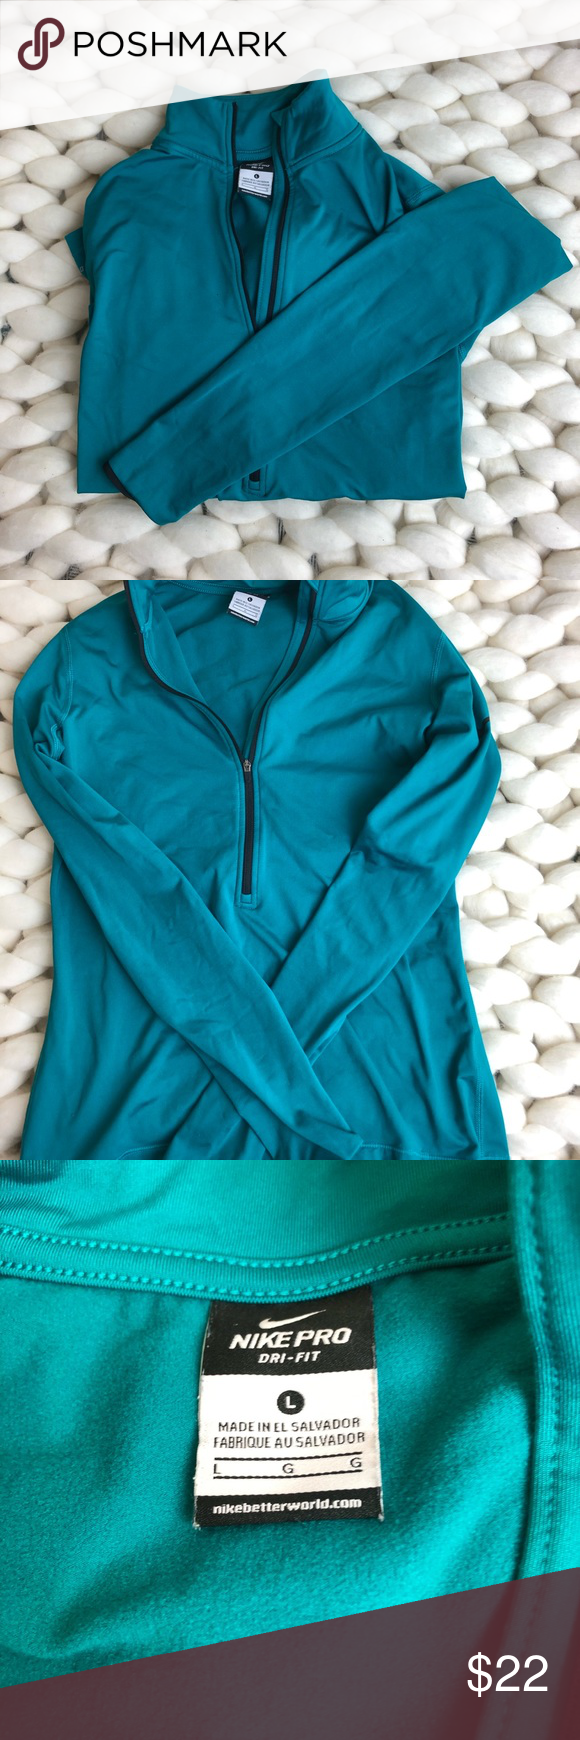 e00518f012a5 Nike Turquoise Cold Weather Run Top Fleece lined Nike Dri Fit cold weather  run top.